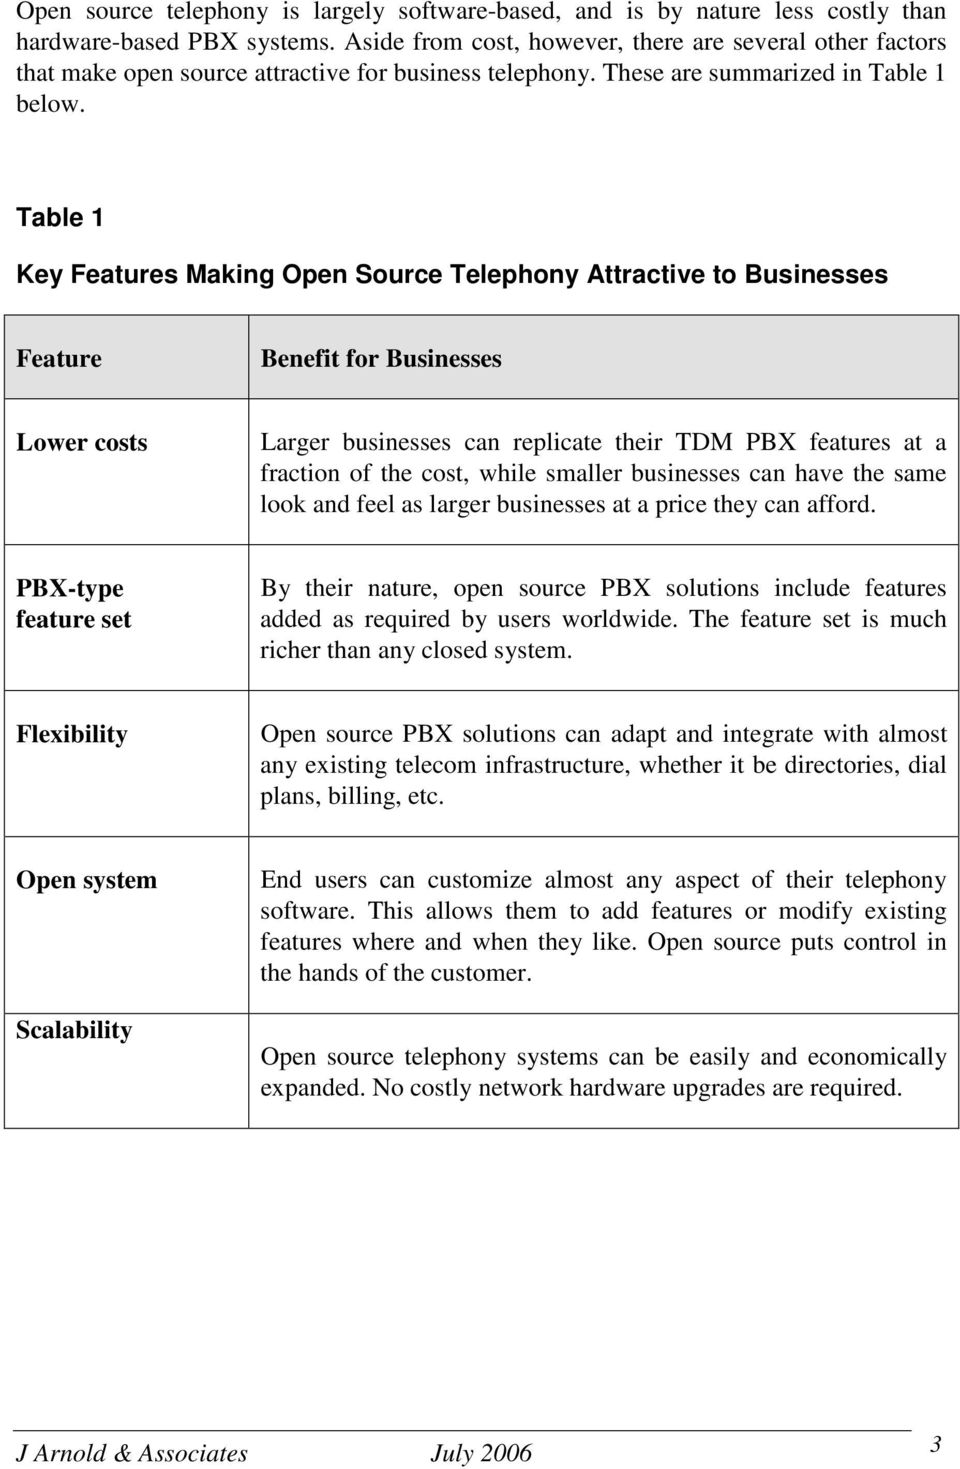 Table 1 Key Features Making Open Source Telephony Attractive to Businesses Feature Benefit for Businesses Lower costs Larger businesses can replicate their TDM PBX features at a fraction of the cost,